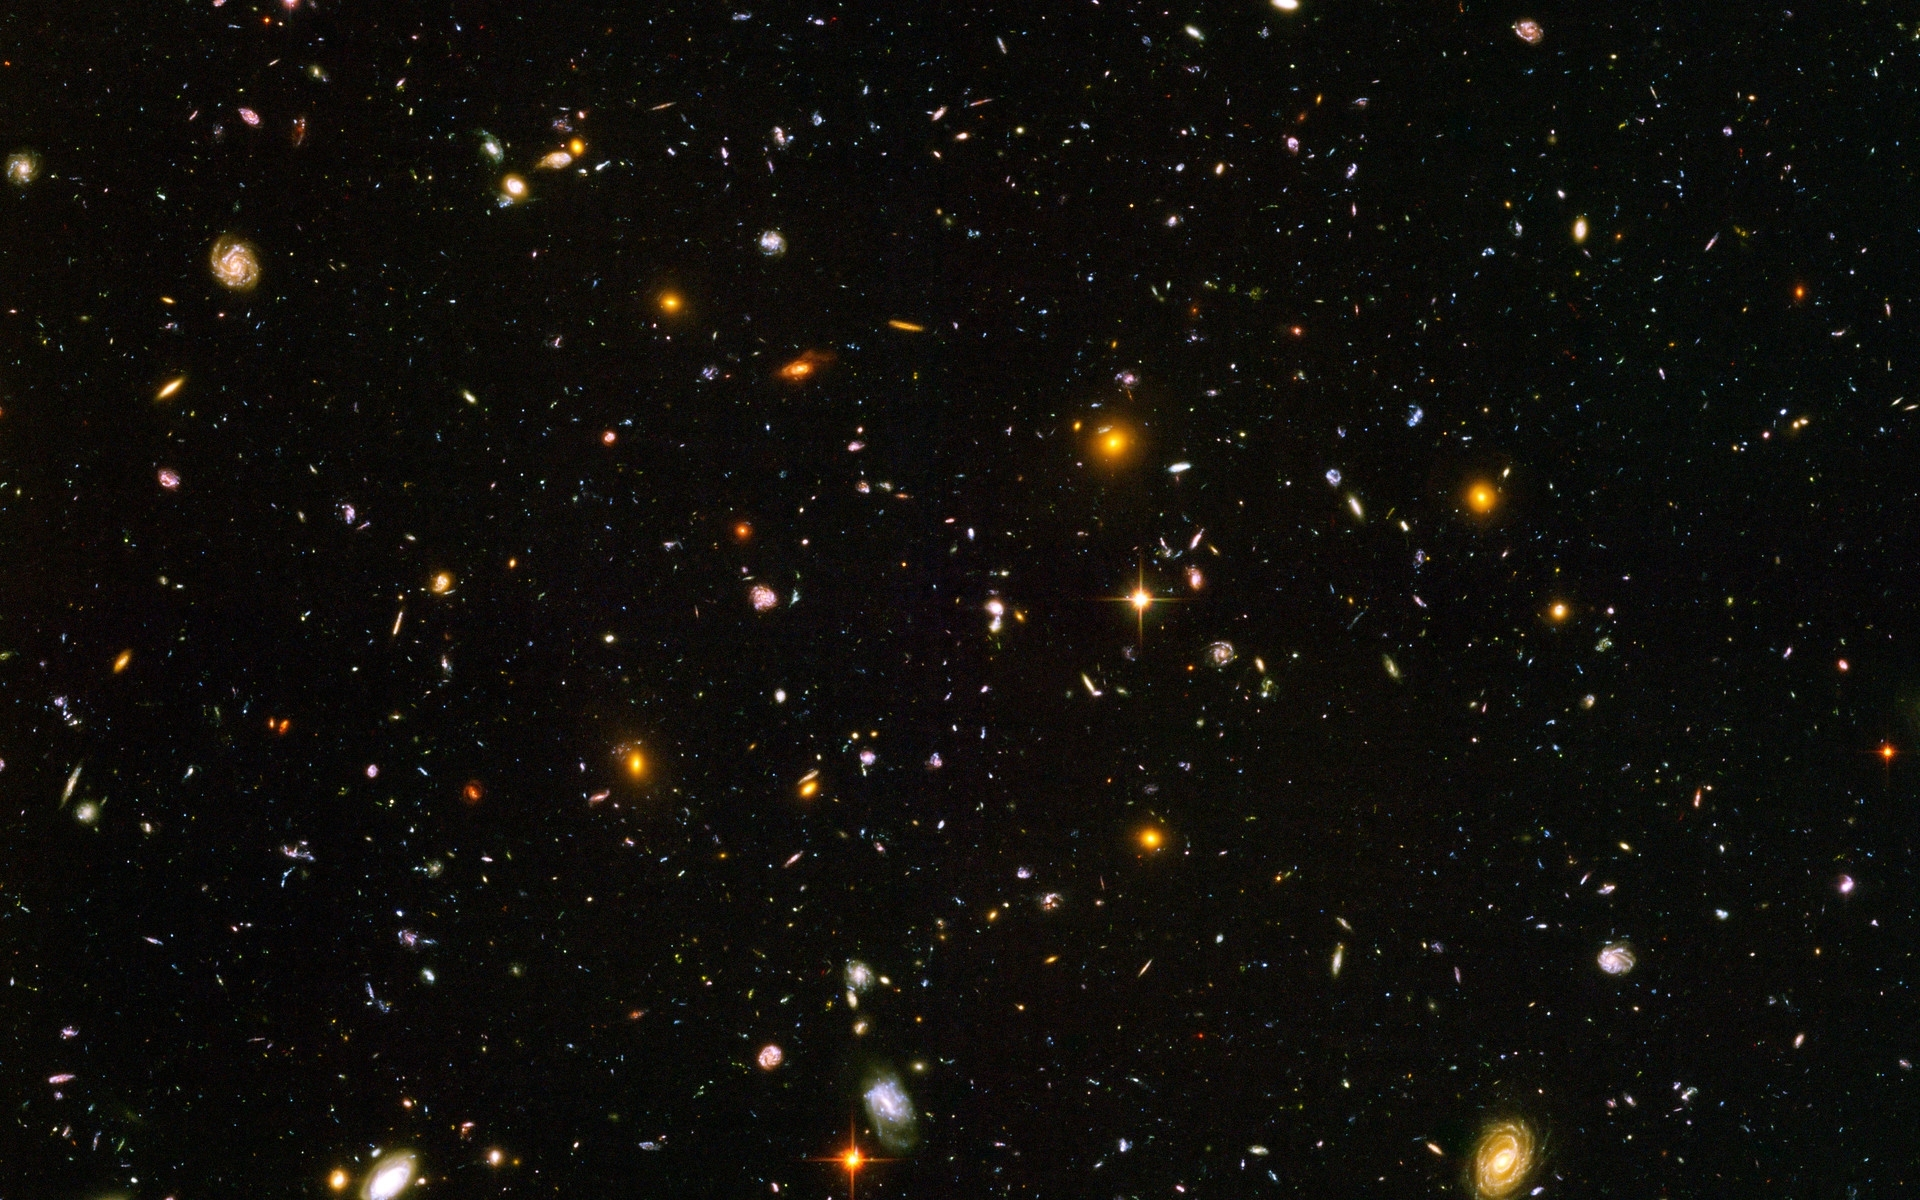 hubble ultra deep field | esa/hubble